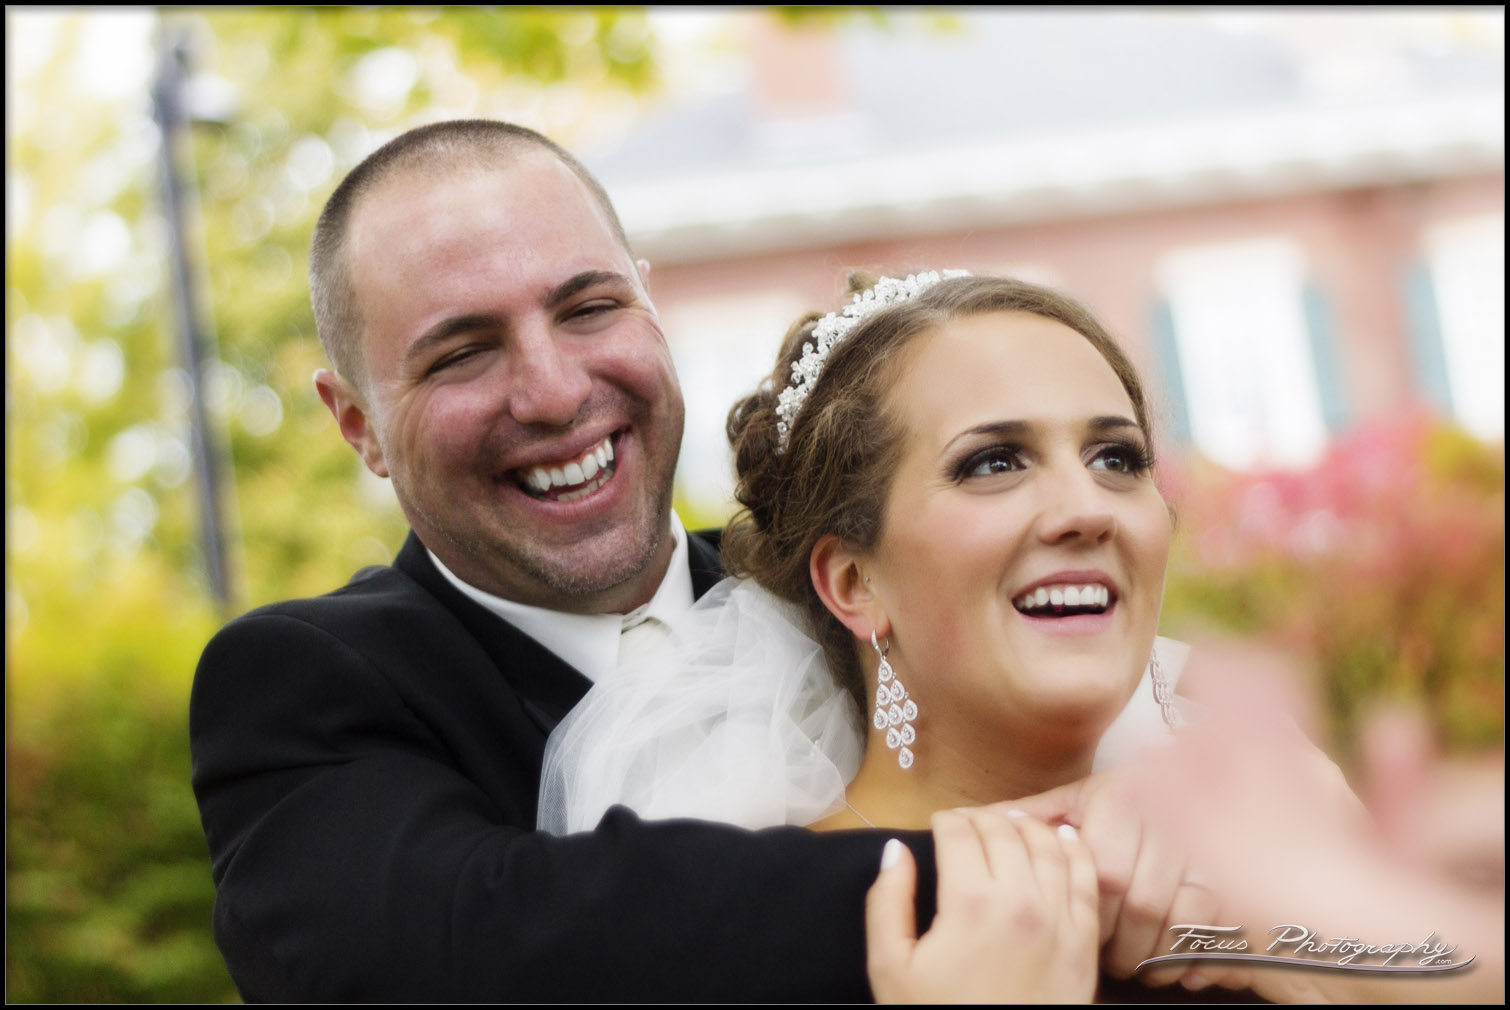 Maine wedding photography of bride and groom at South Berwick's Red Barn at Outlook Farm